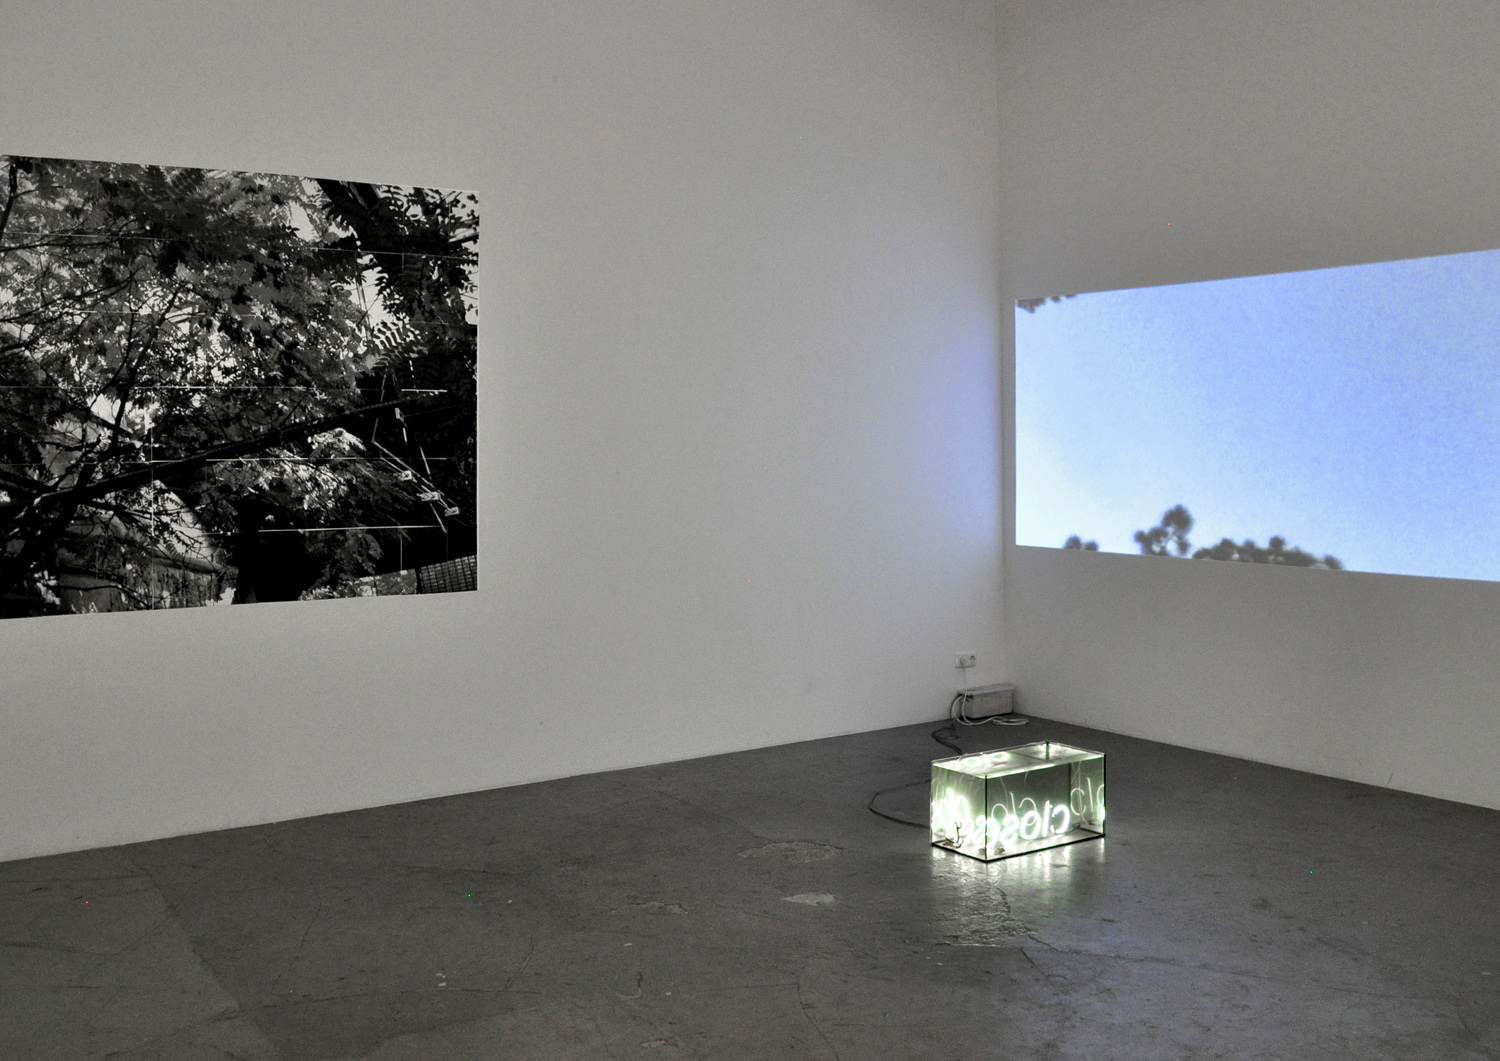 installation view, Studio Jeppe Hein, Berlin, 2013